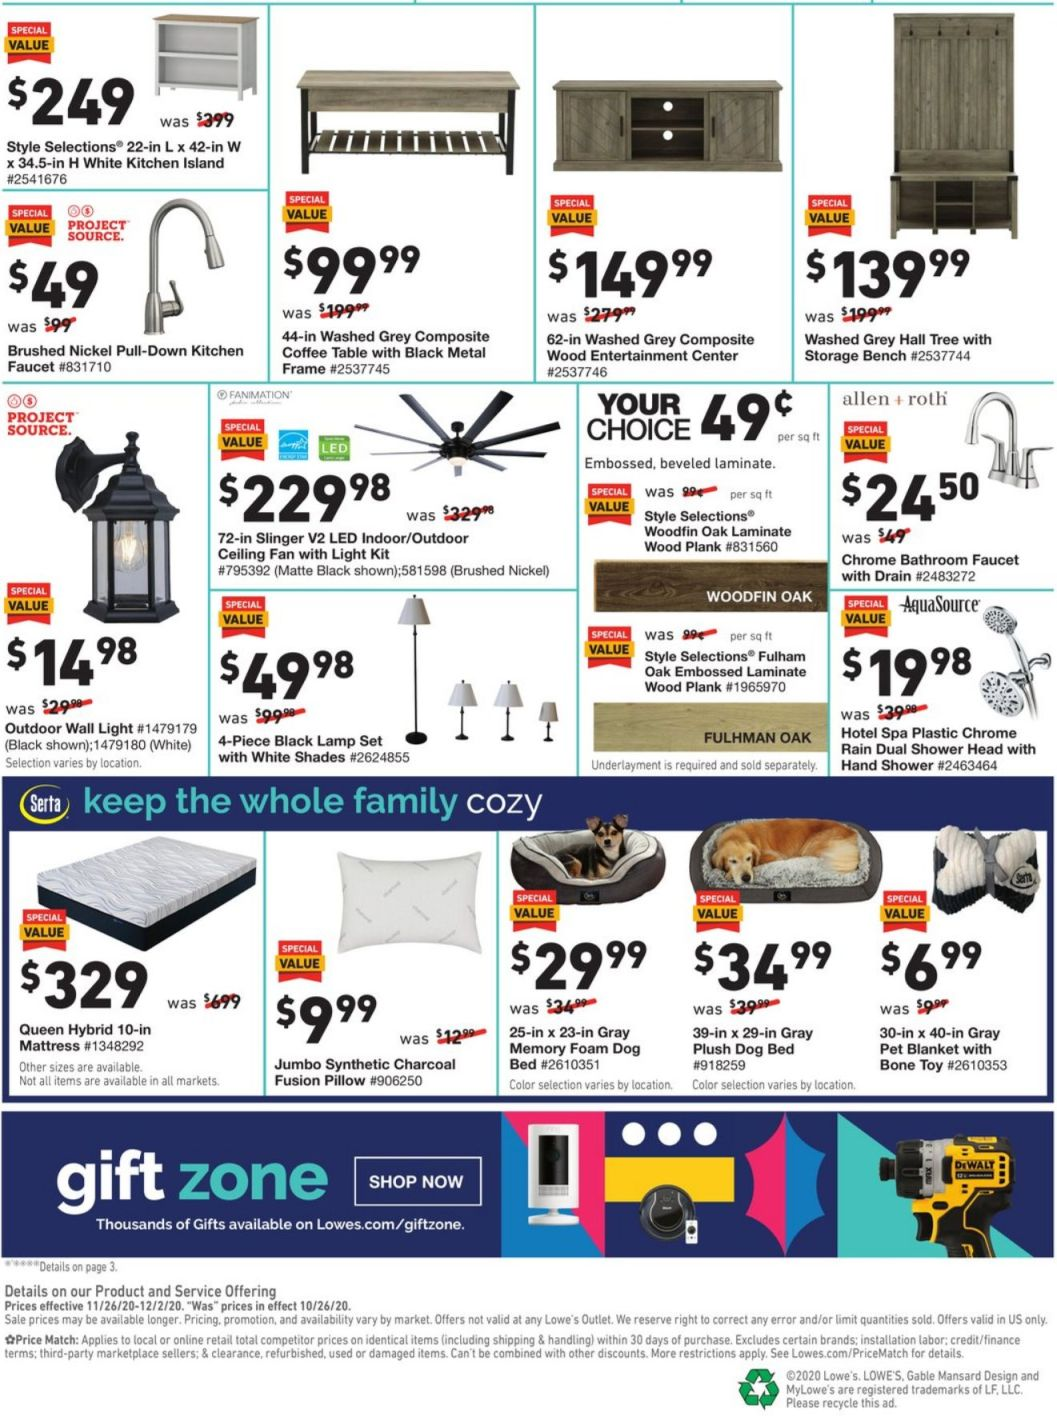 Lowe's Black Friday and Cyber Monday 2020 Page 4